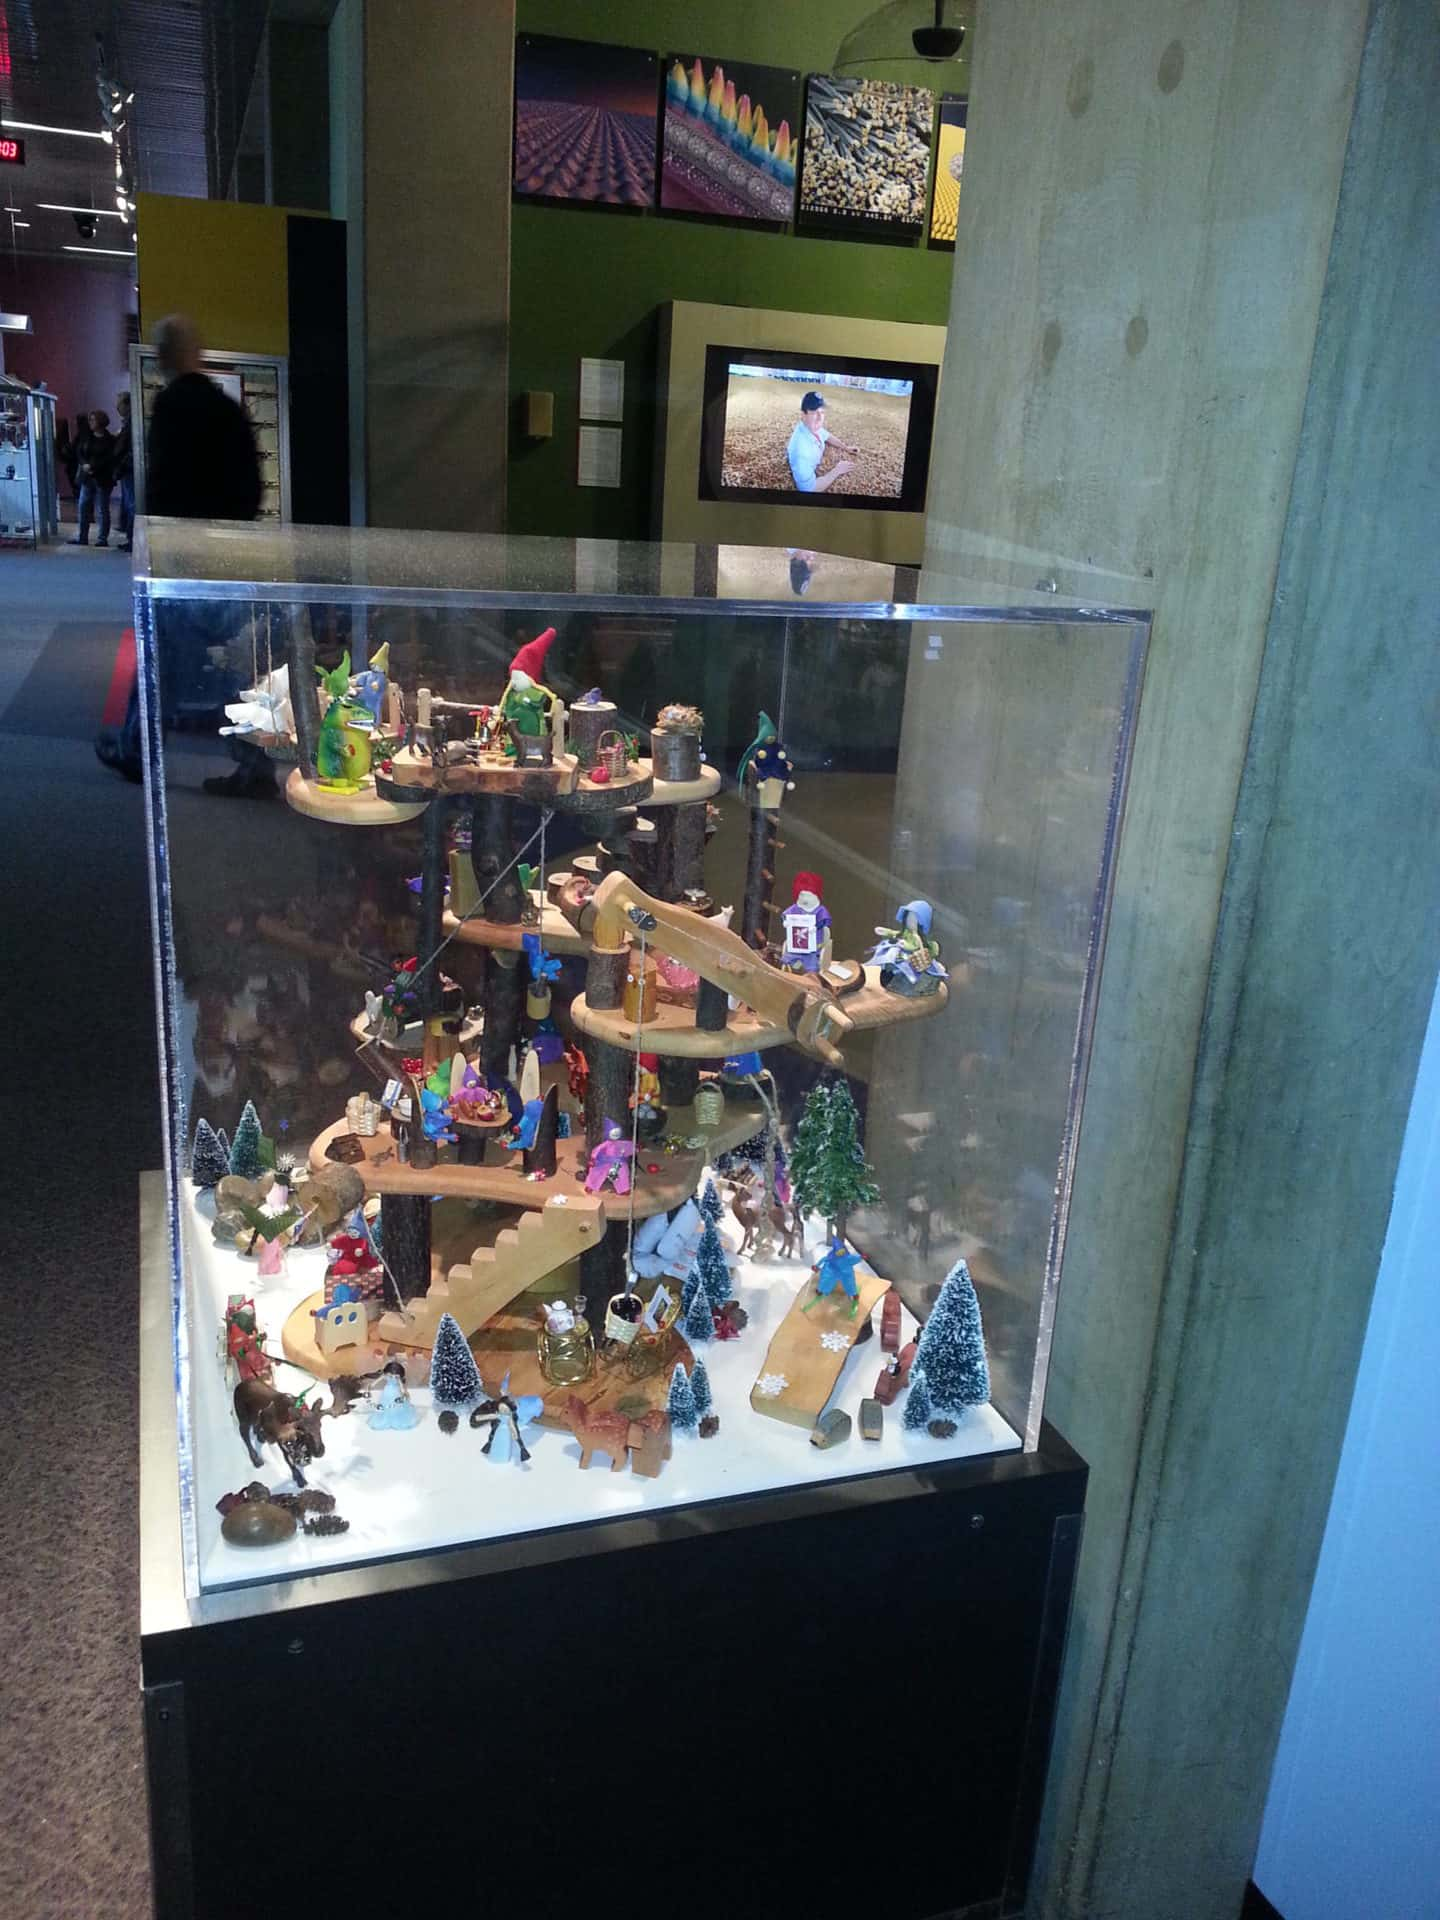 St Louis Science Center - Lego Display